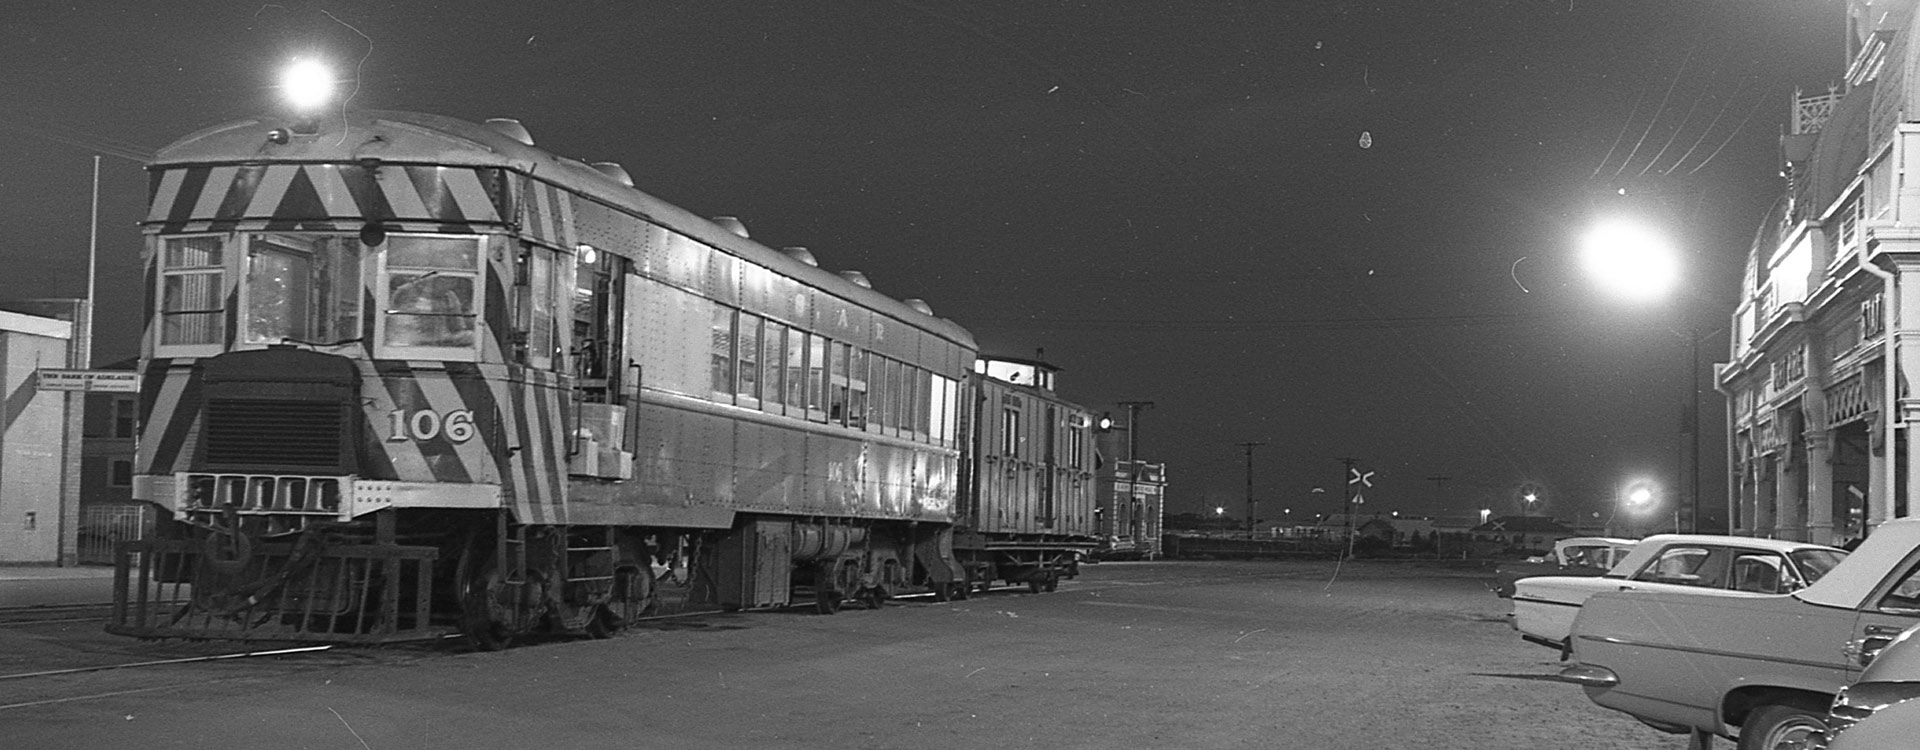 Brill railcar No. 106 at Port Pirie in November 1966, about to depart for Peterborough where it will connect with the Broken Hill Express.